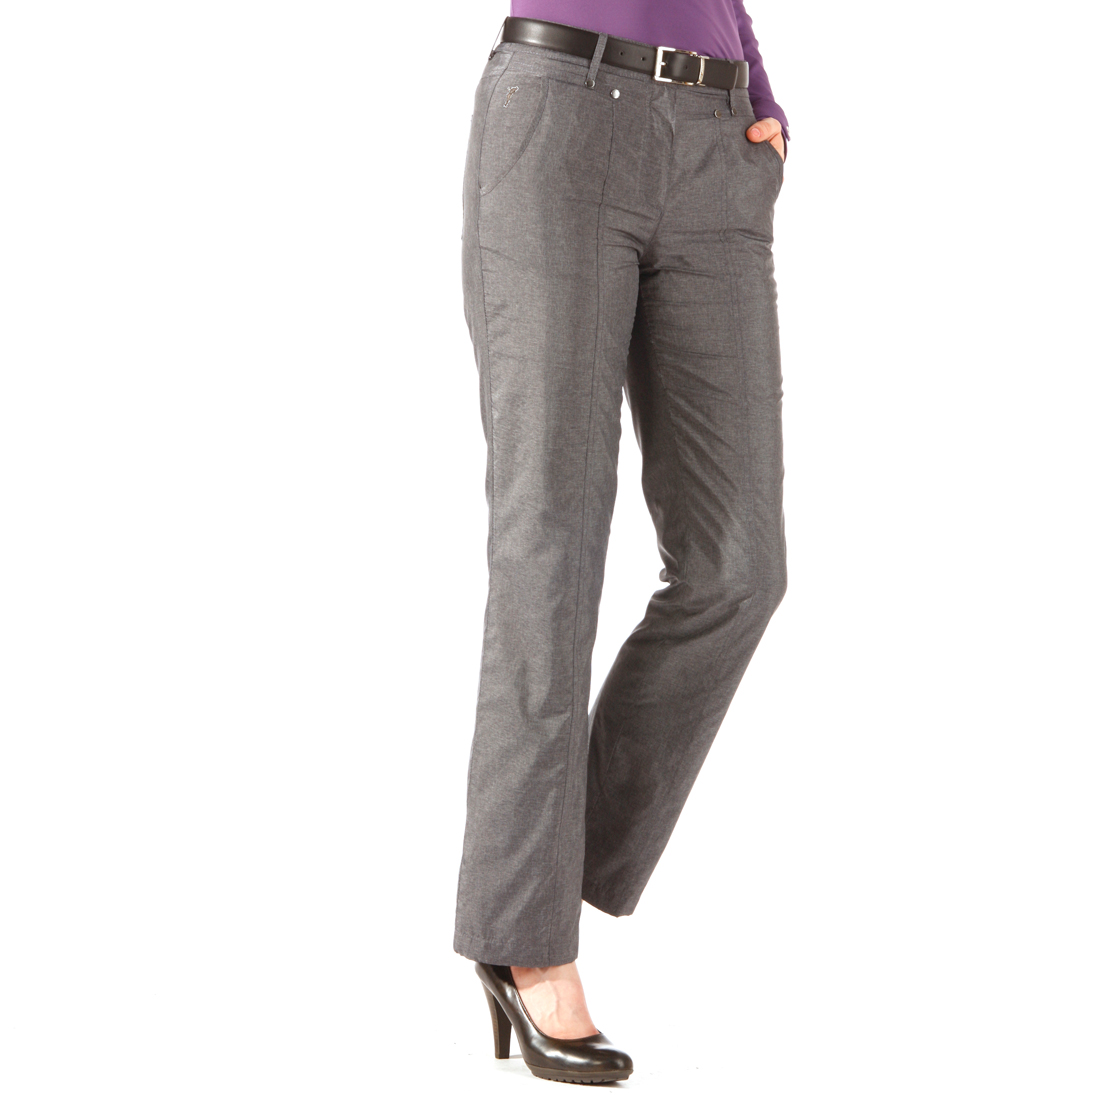 Damen Thermo Hose in Jeans-Optik